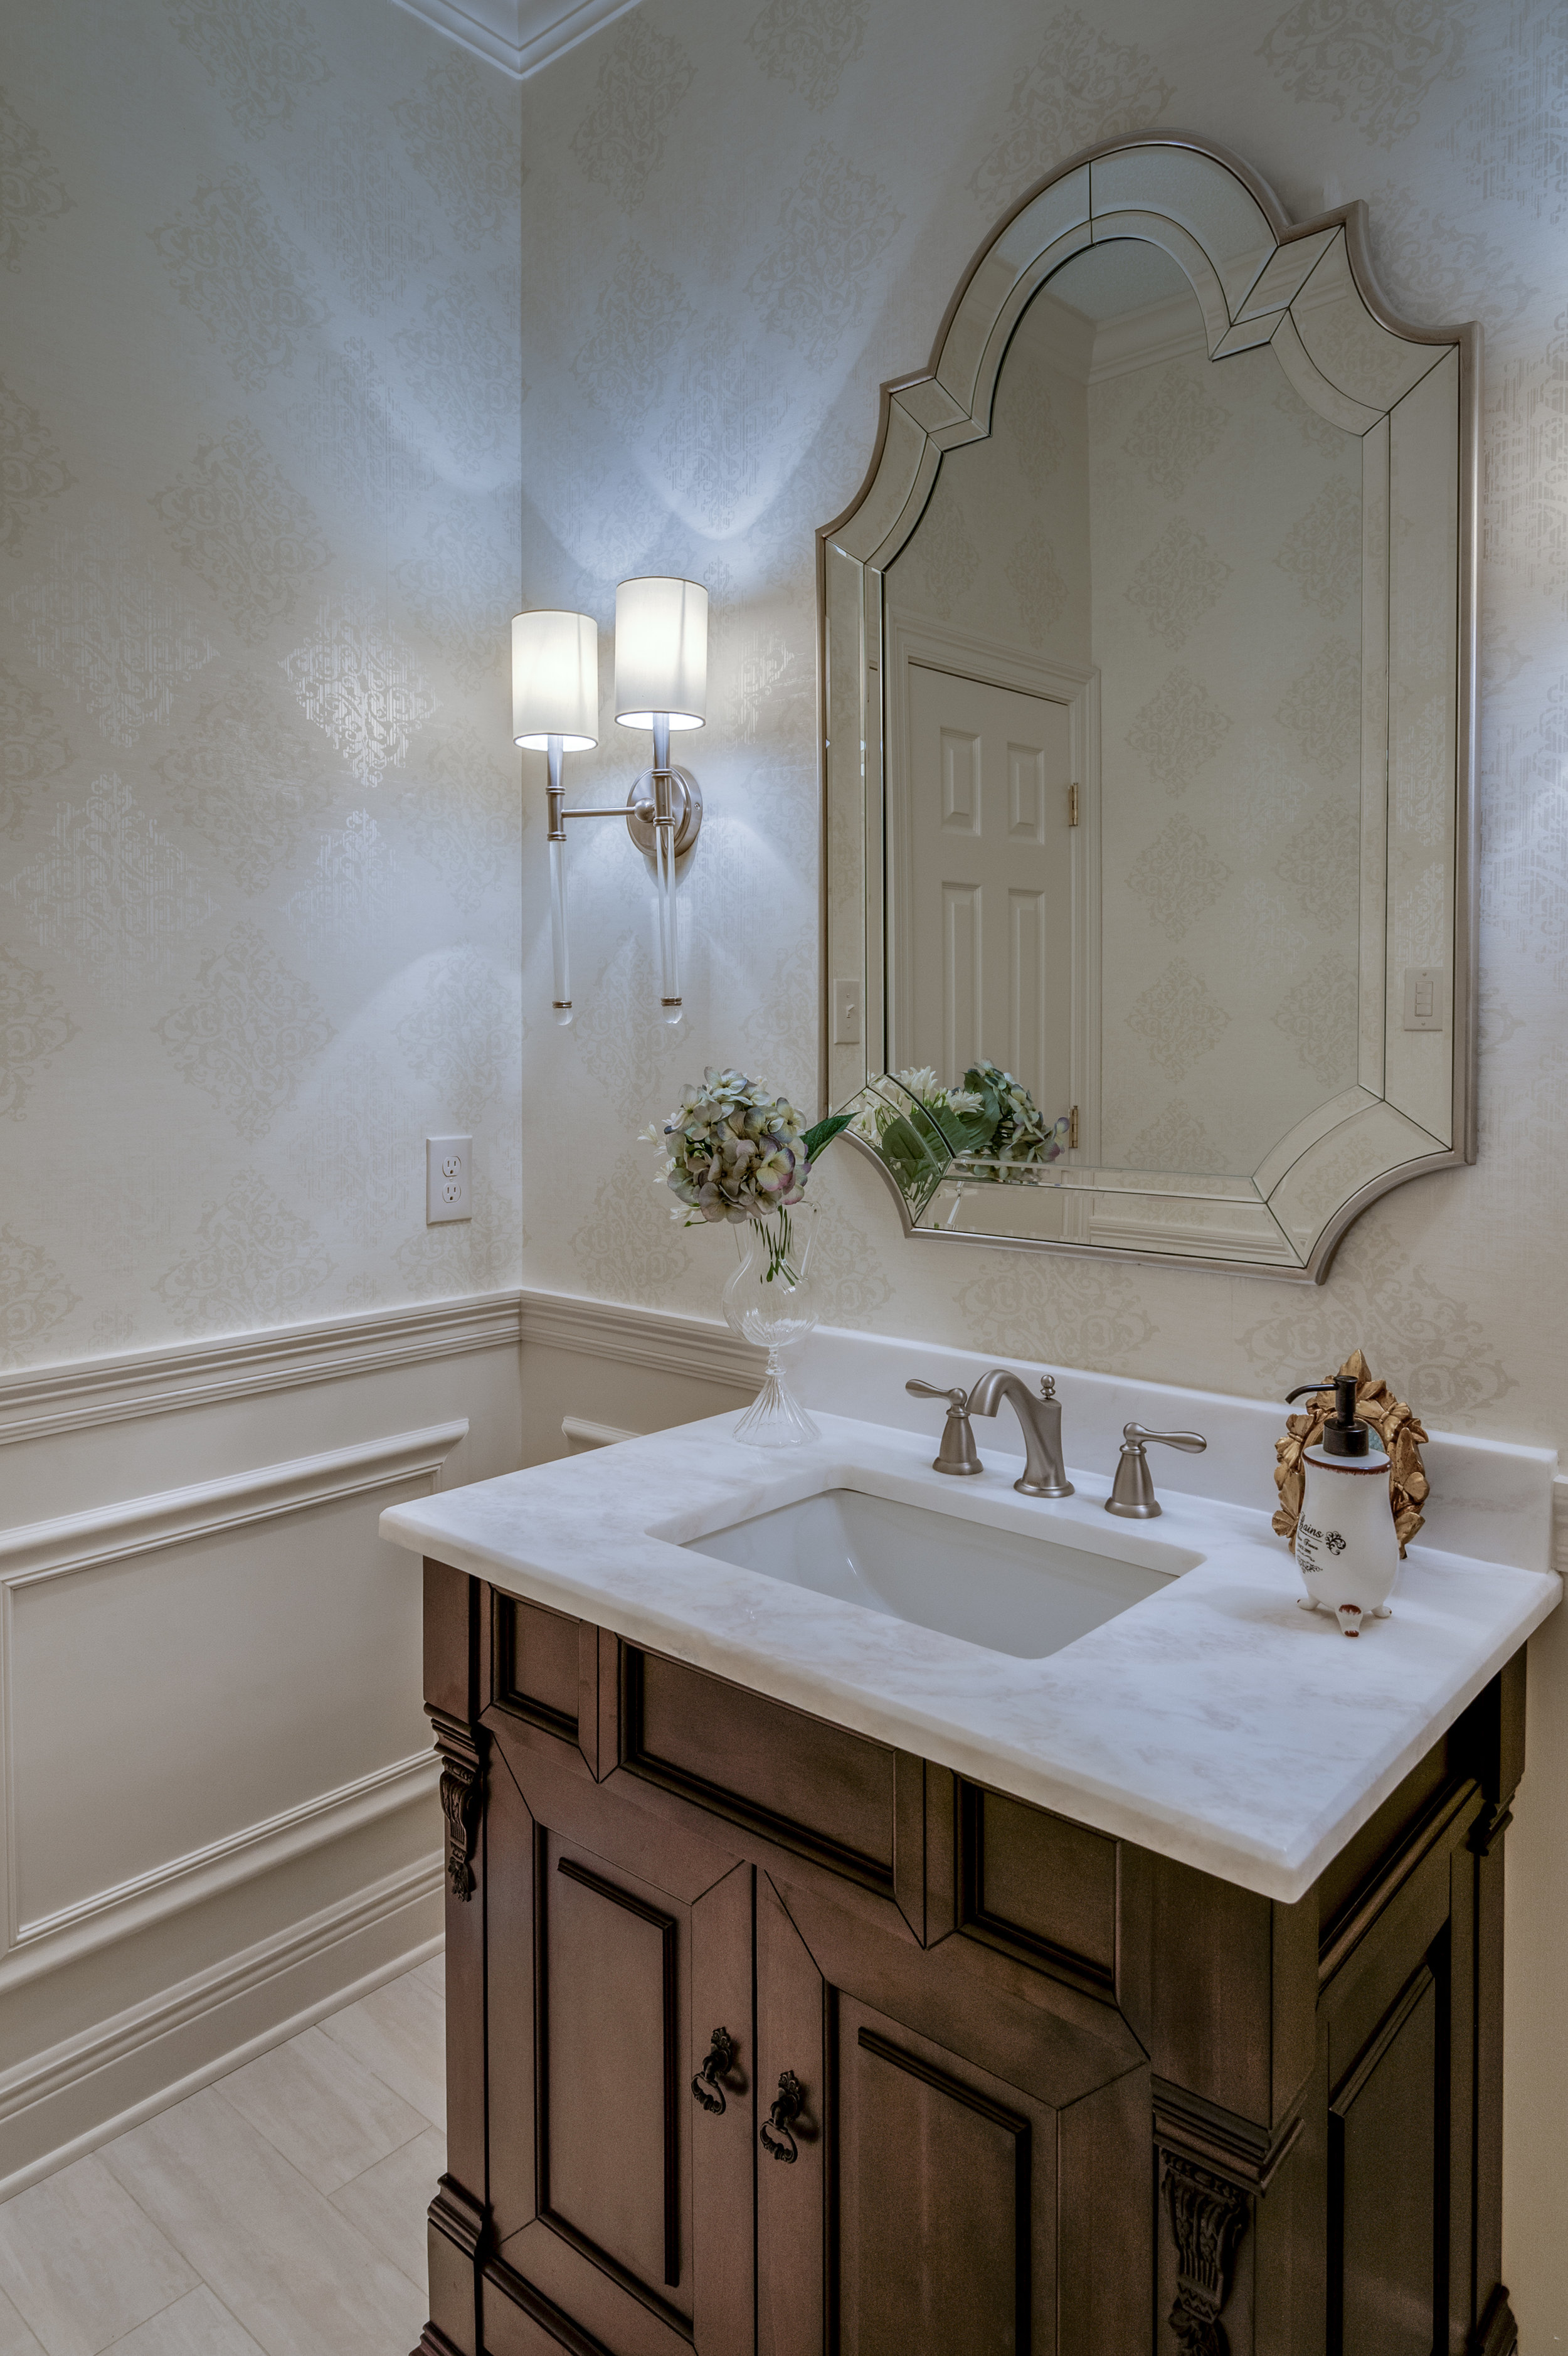 traditional style bathroom vanity metairie best interior designers khb interiors